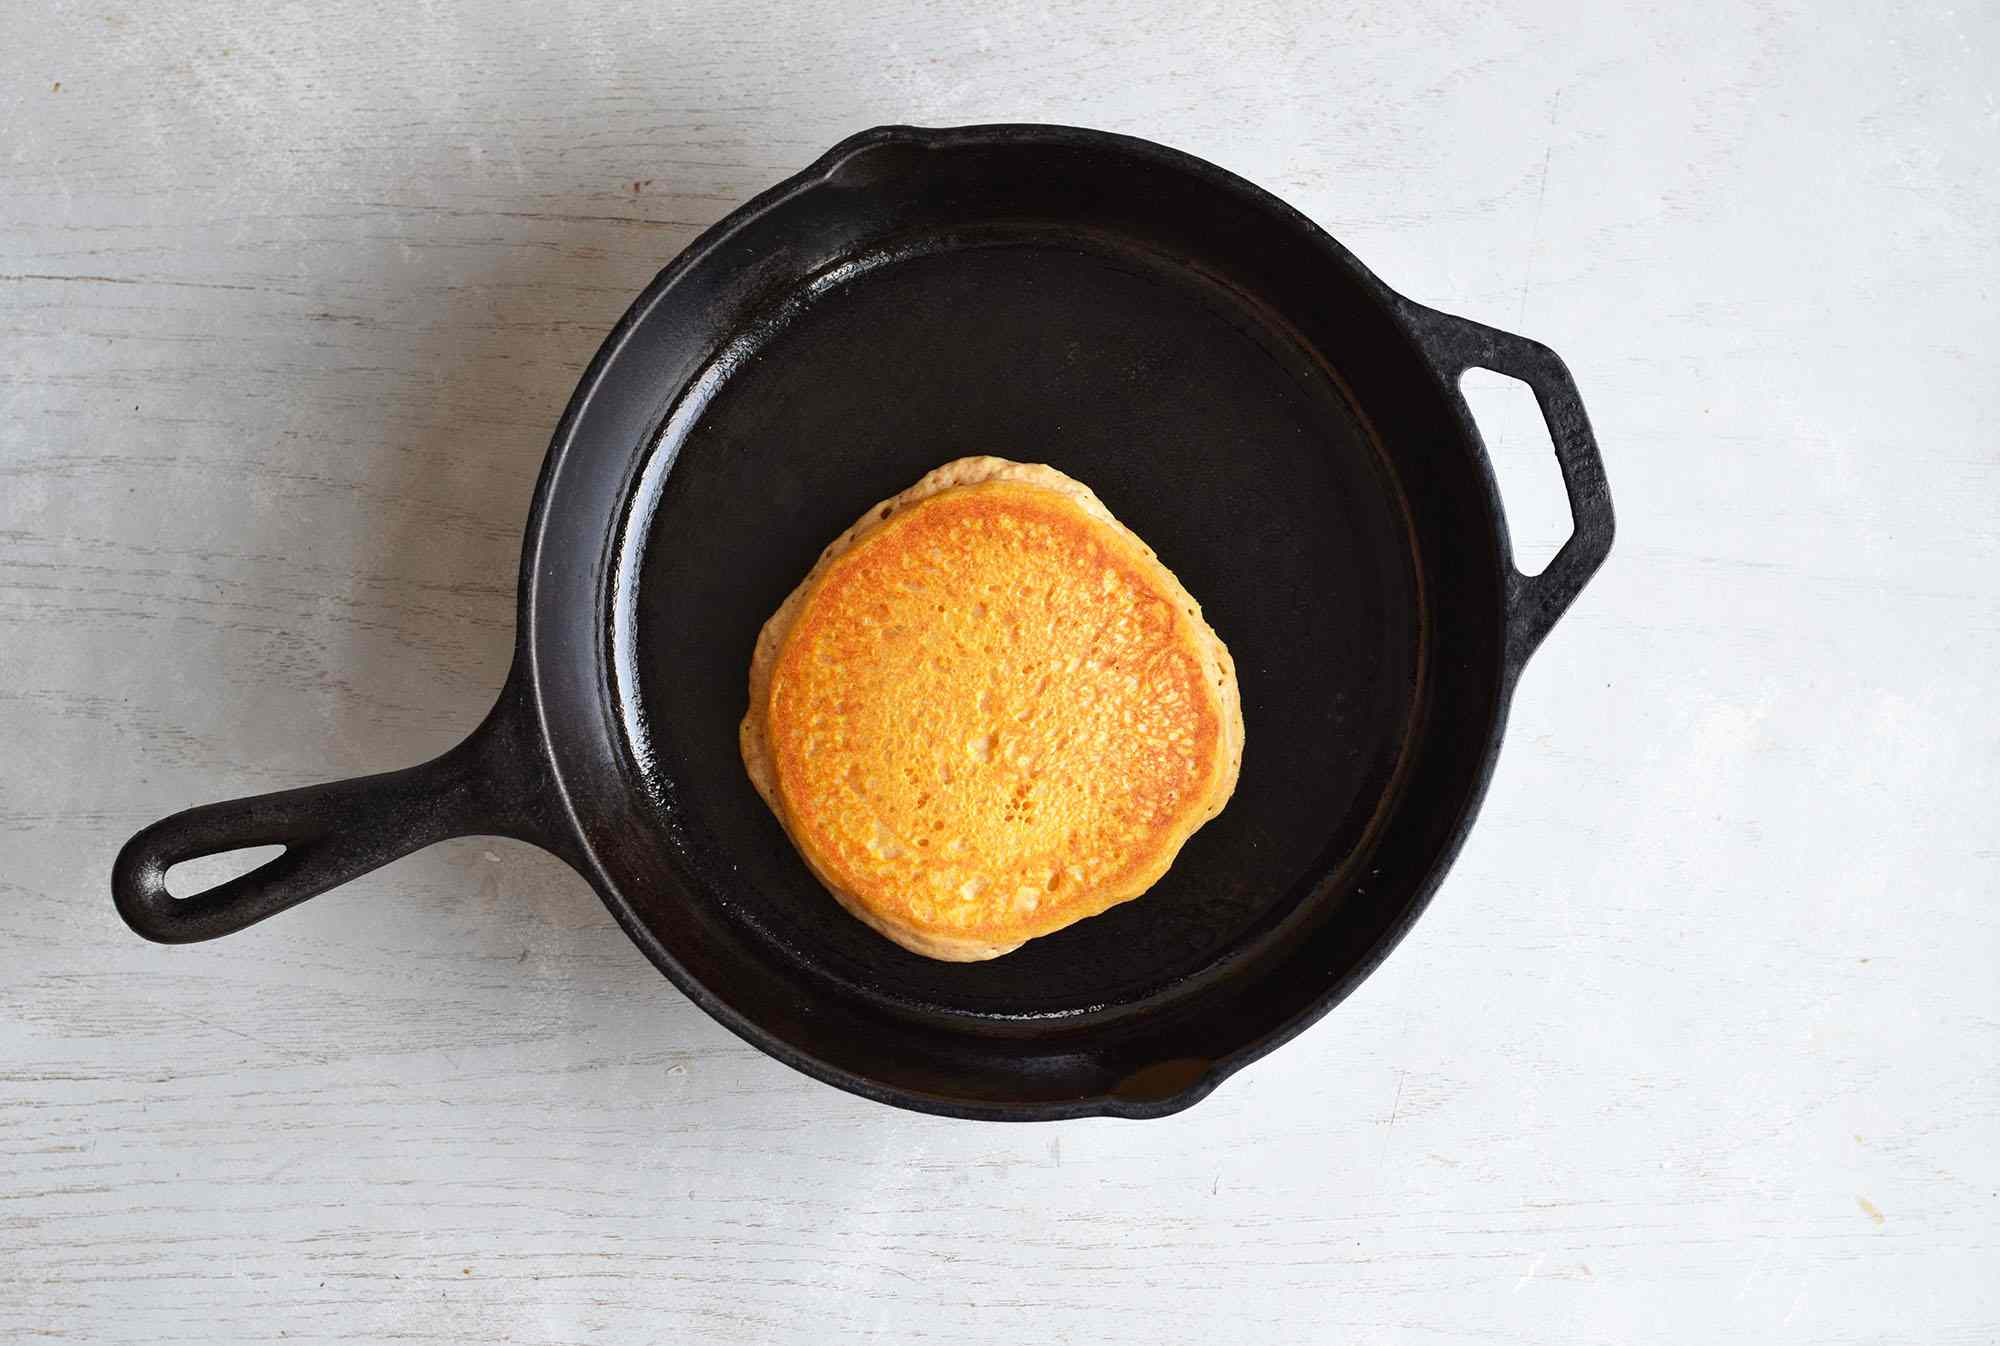 pumpkin pancakes cooked in a pan